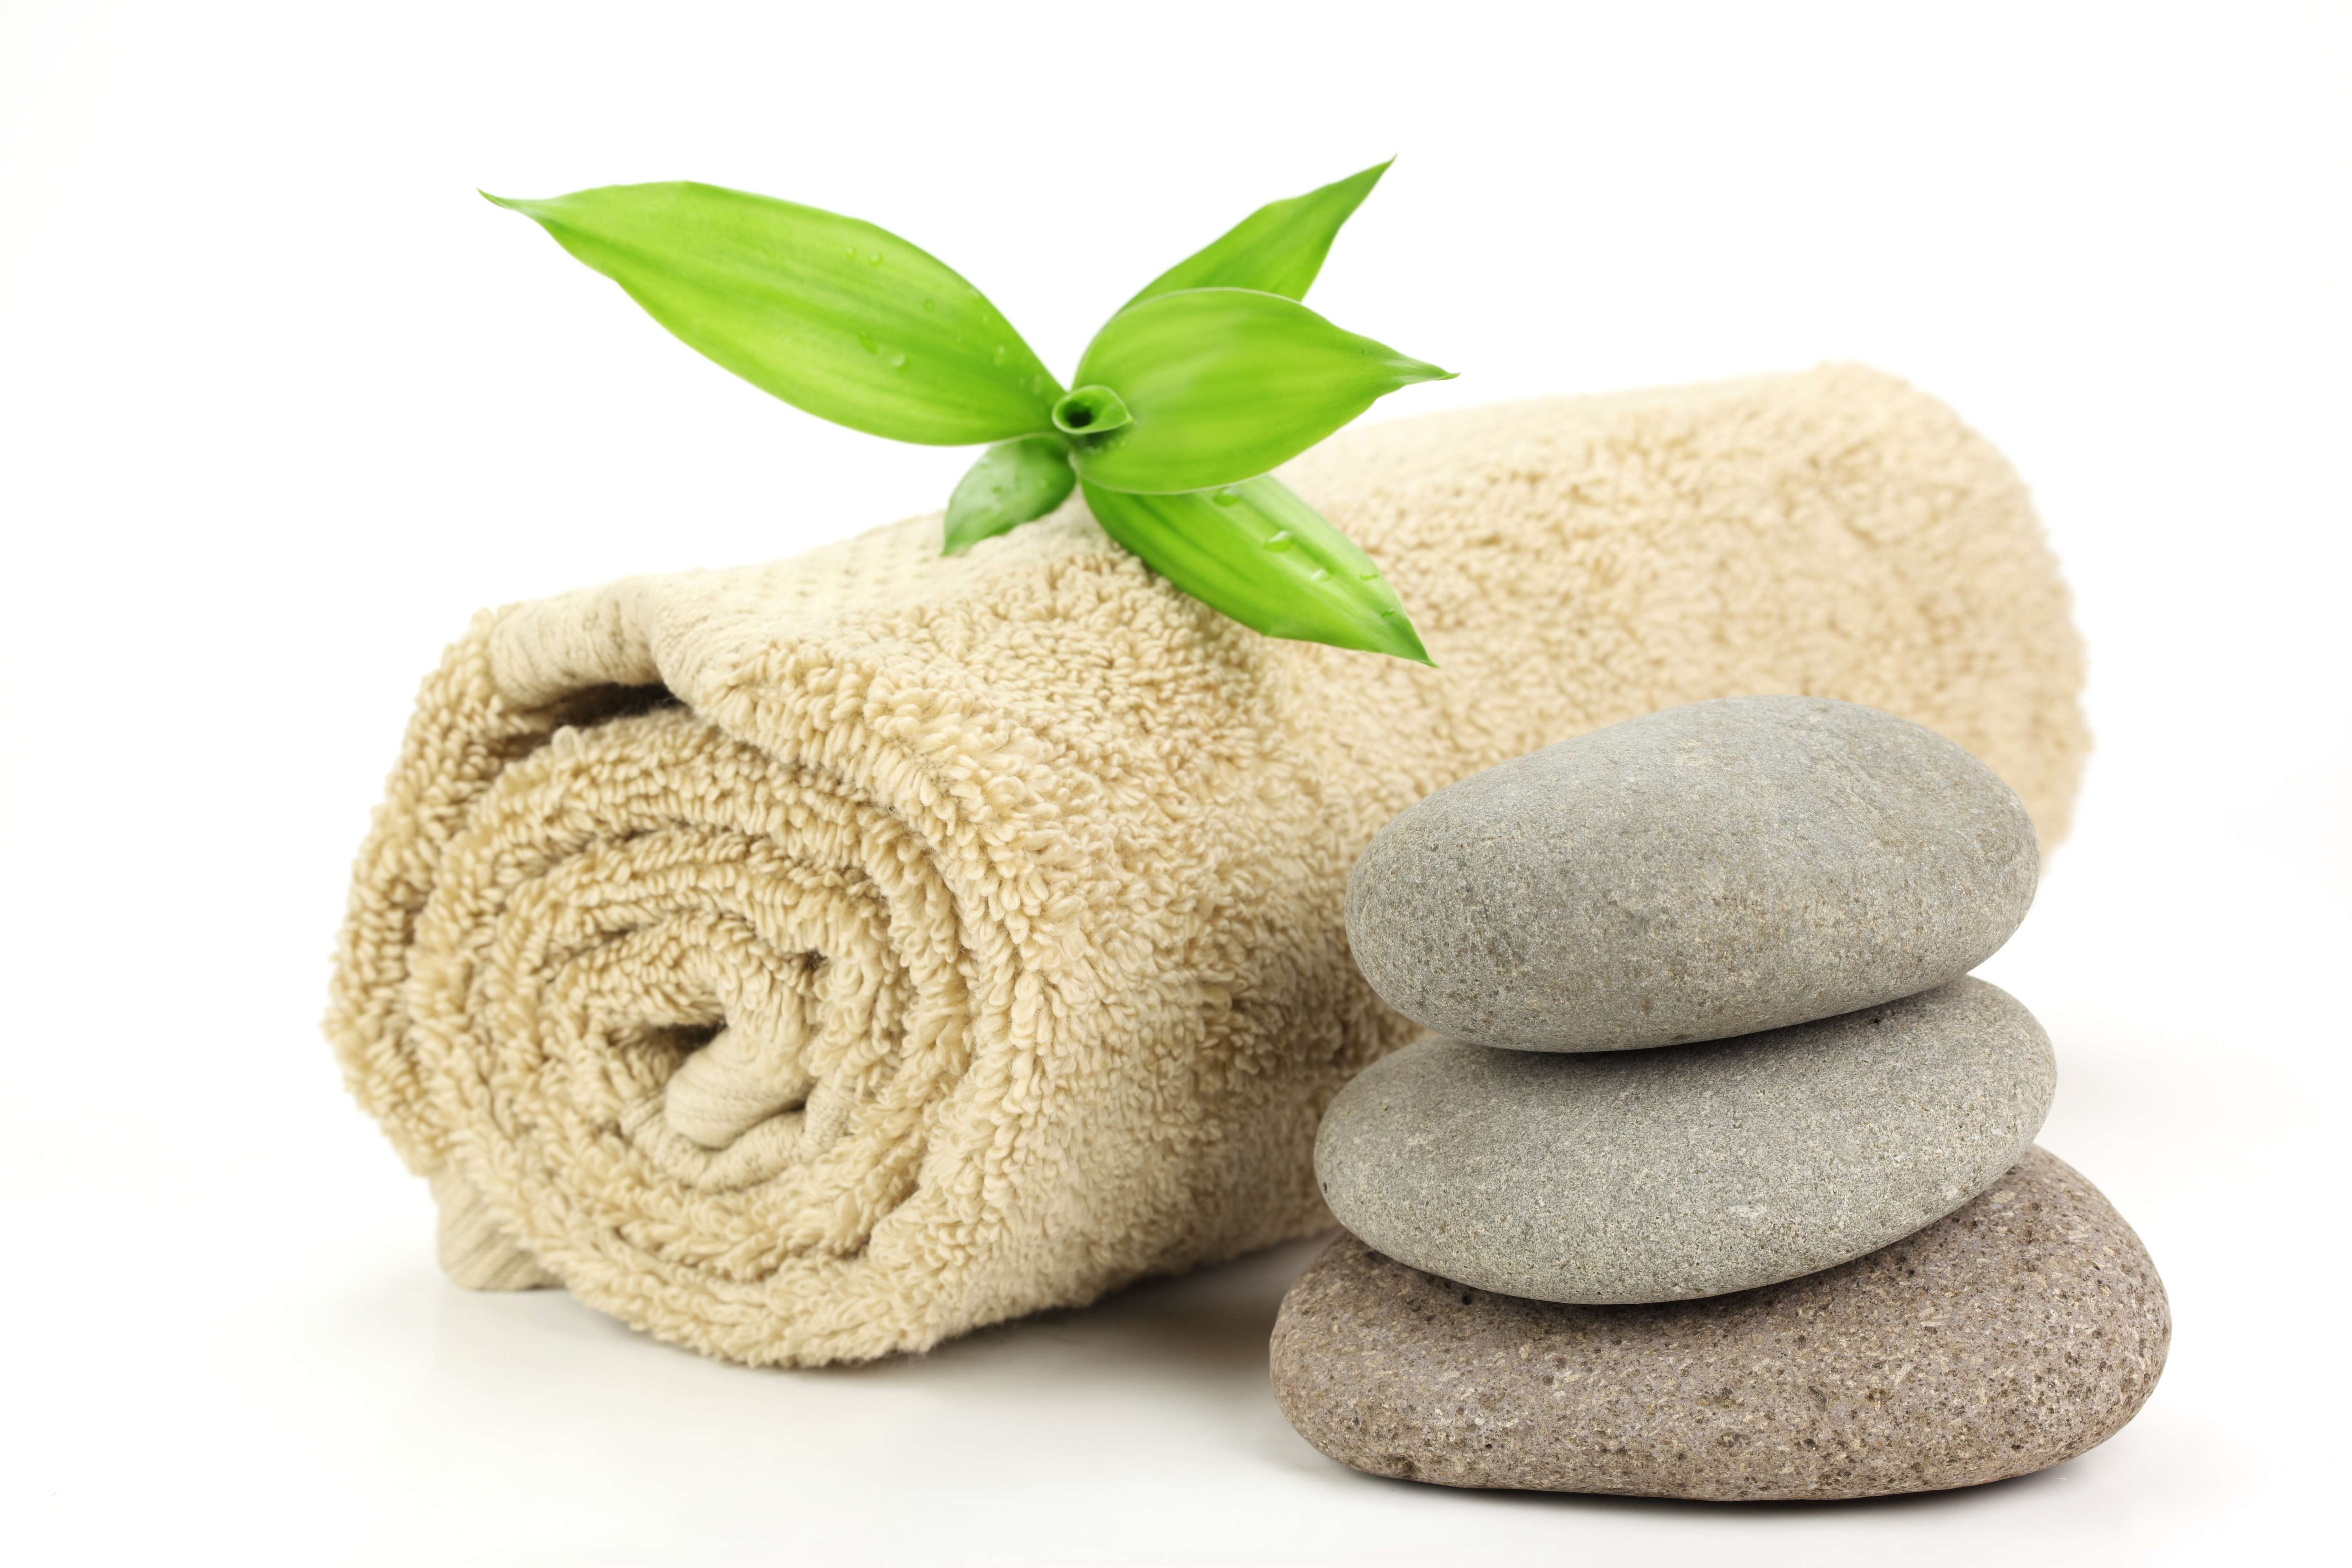 Spa Treatments Tucson Facials In Tucson Az